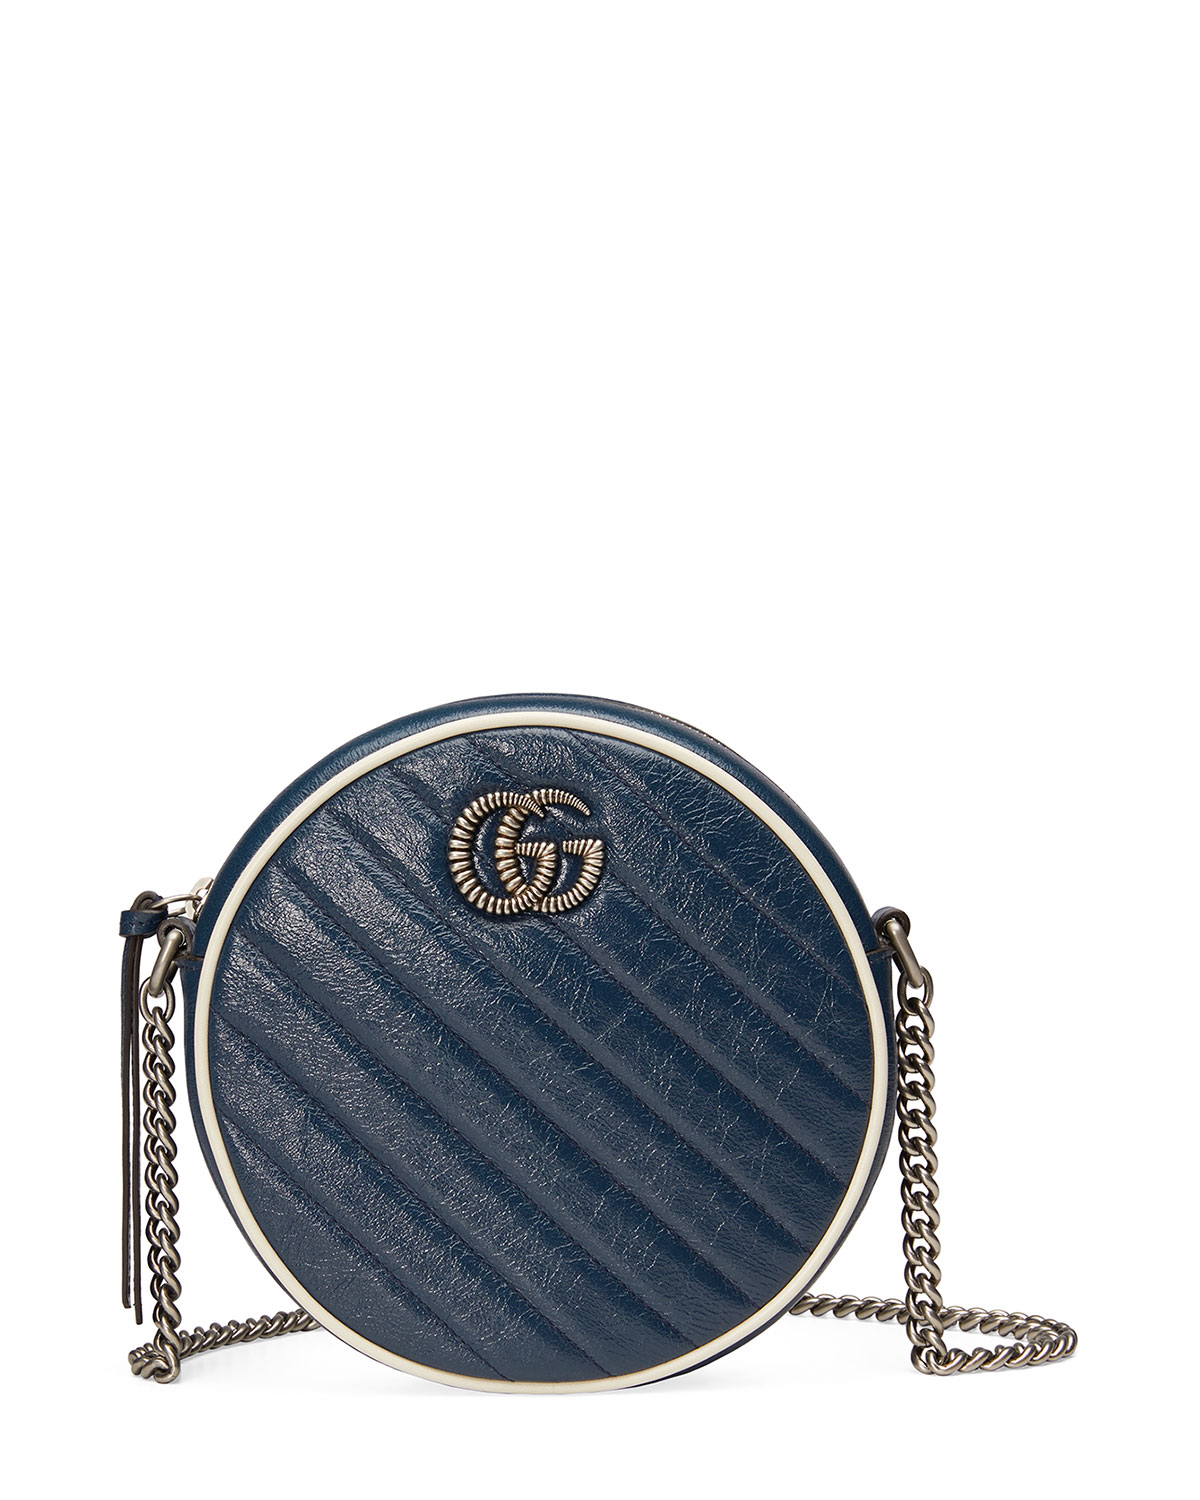 Gucci Crossbody GG MARMONT MINI ROUND TORCHON LEATHER CROSSBODY BAG